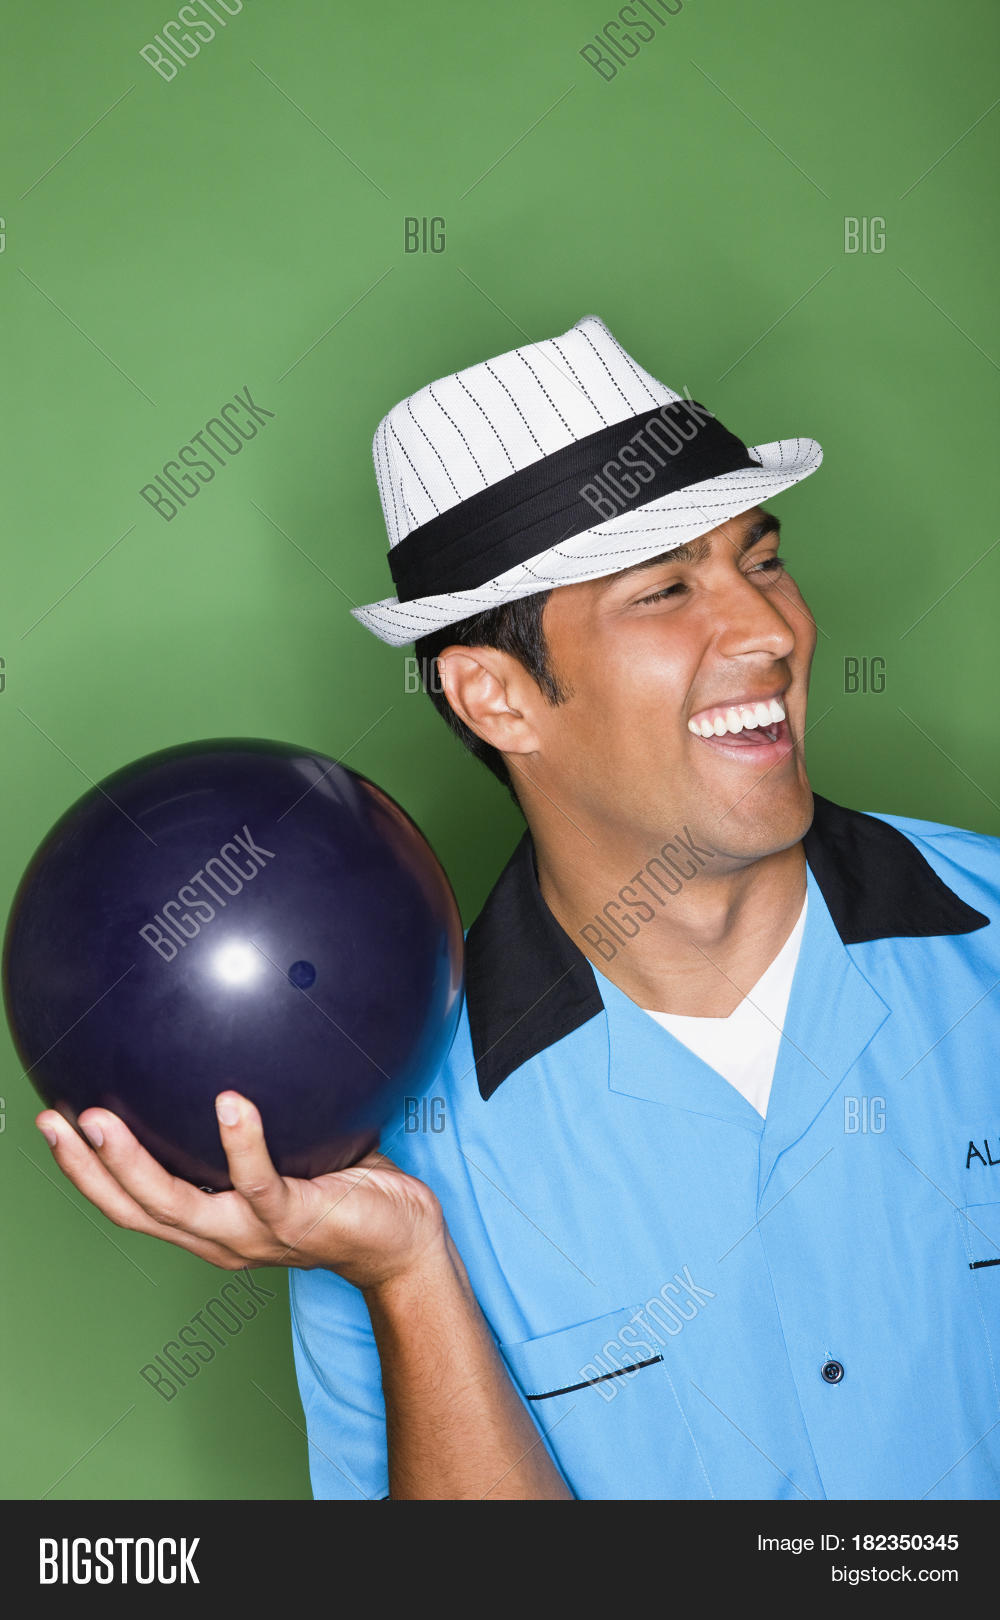 bowler hispanic single men Truth be told, it's really unfair to single out latinos as the only men who cheat  latino men were taught that they had more rights than women,.